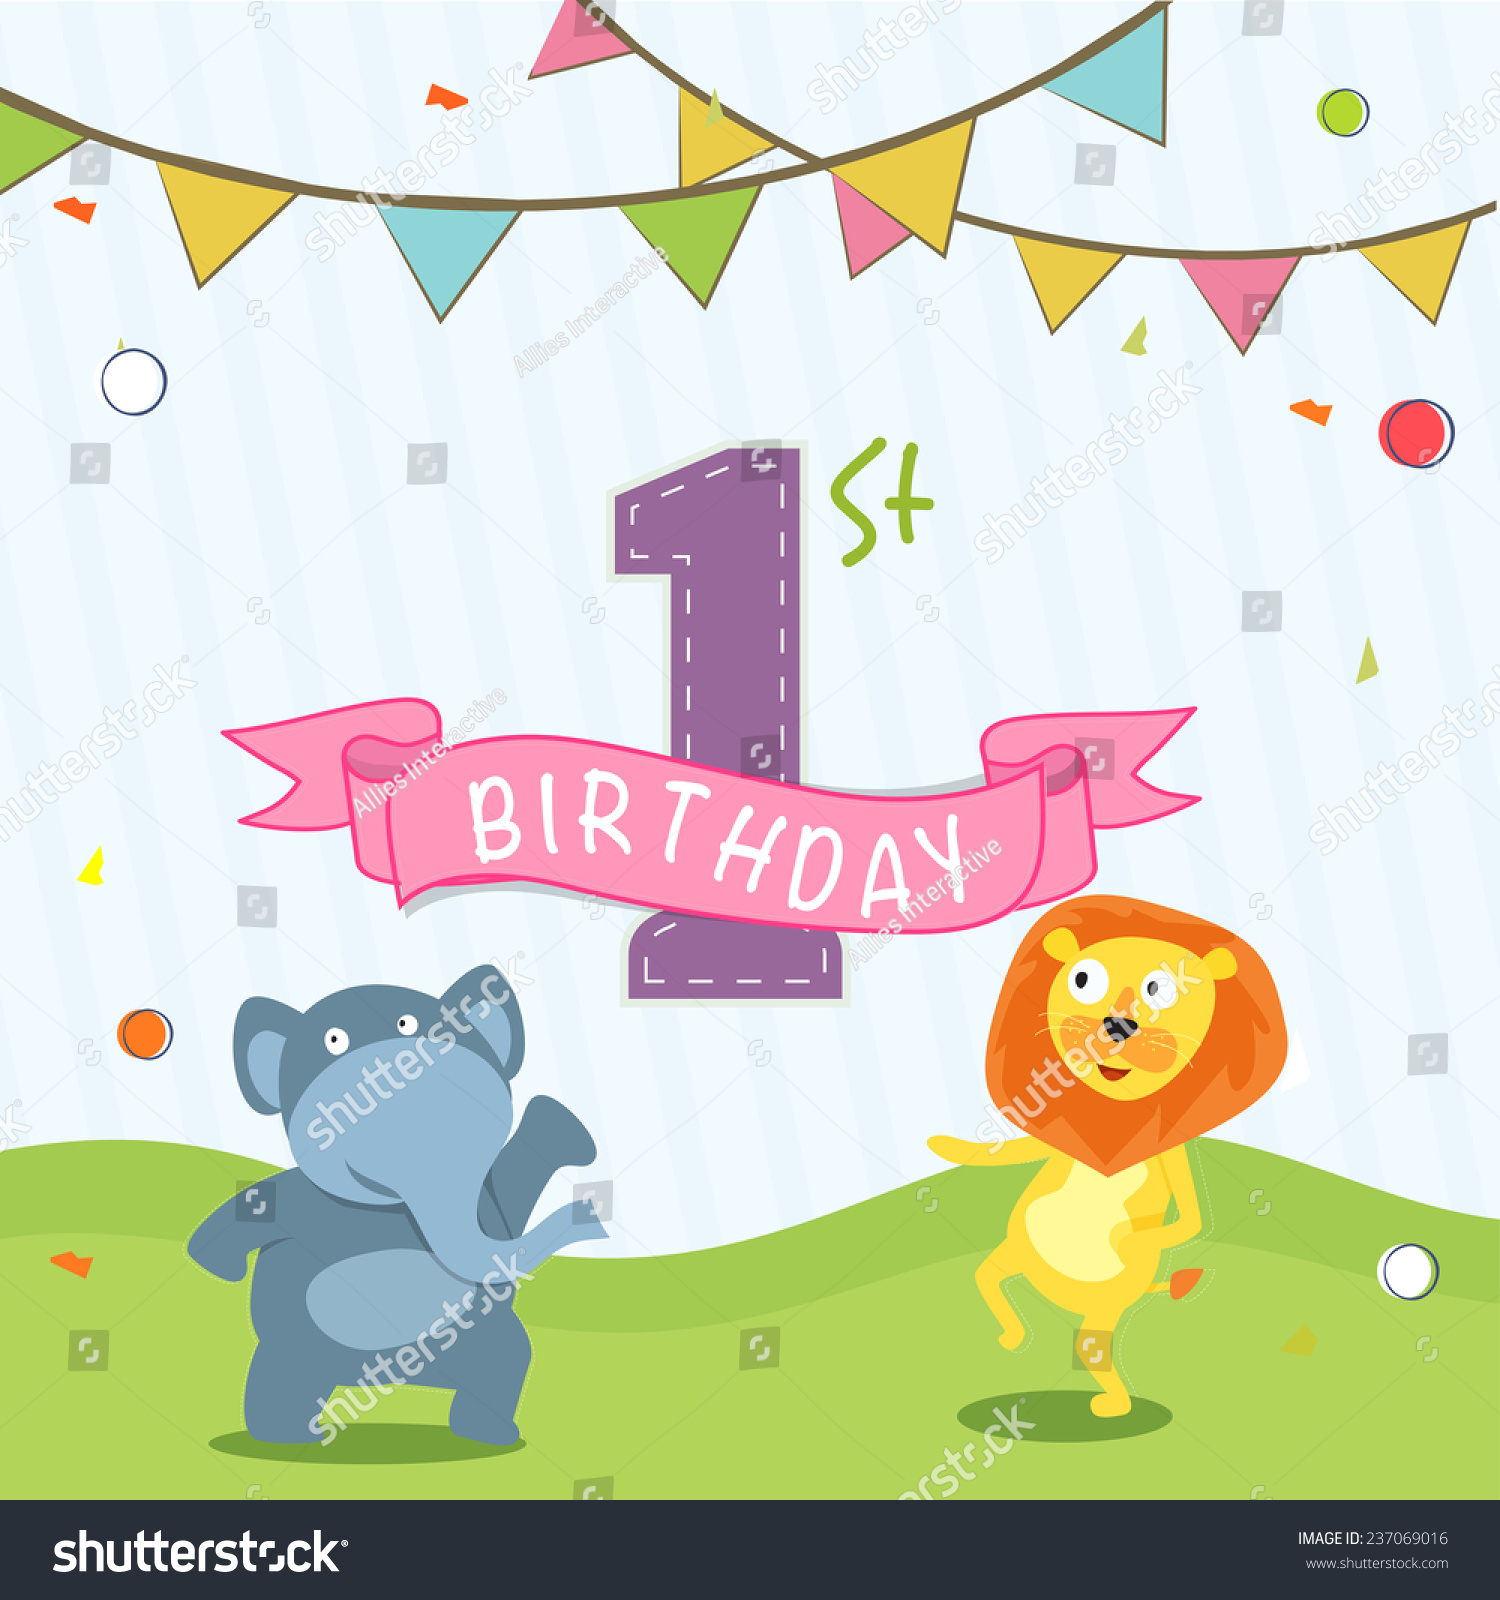 Kids 1st birthday celebration invitation card design with party flag and cartoon of animals